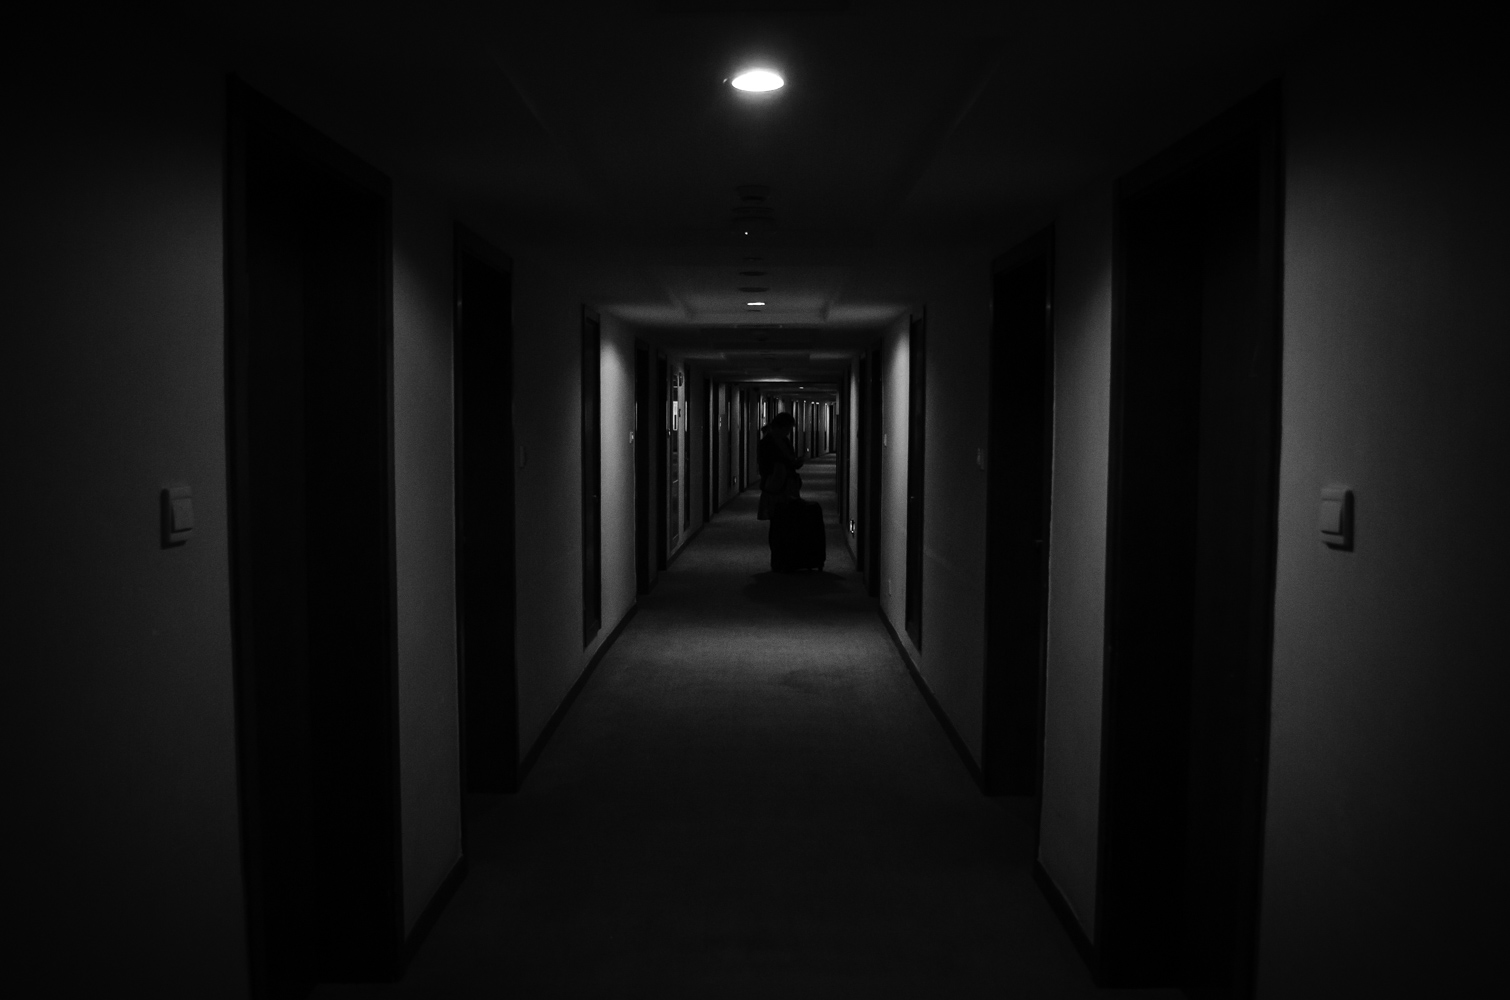 The terrifyingly long corridors didn't seem to have too many lights turned on. Surely an example of eco-friendly energy saving measure in China. I guess that's what you get for $40 for a night.